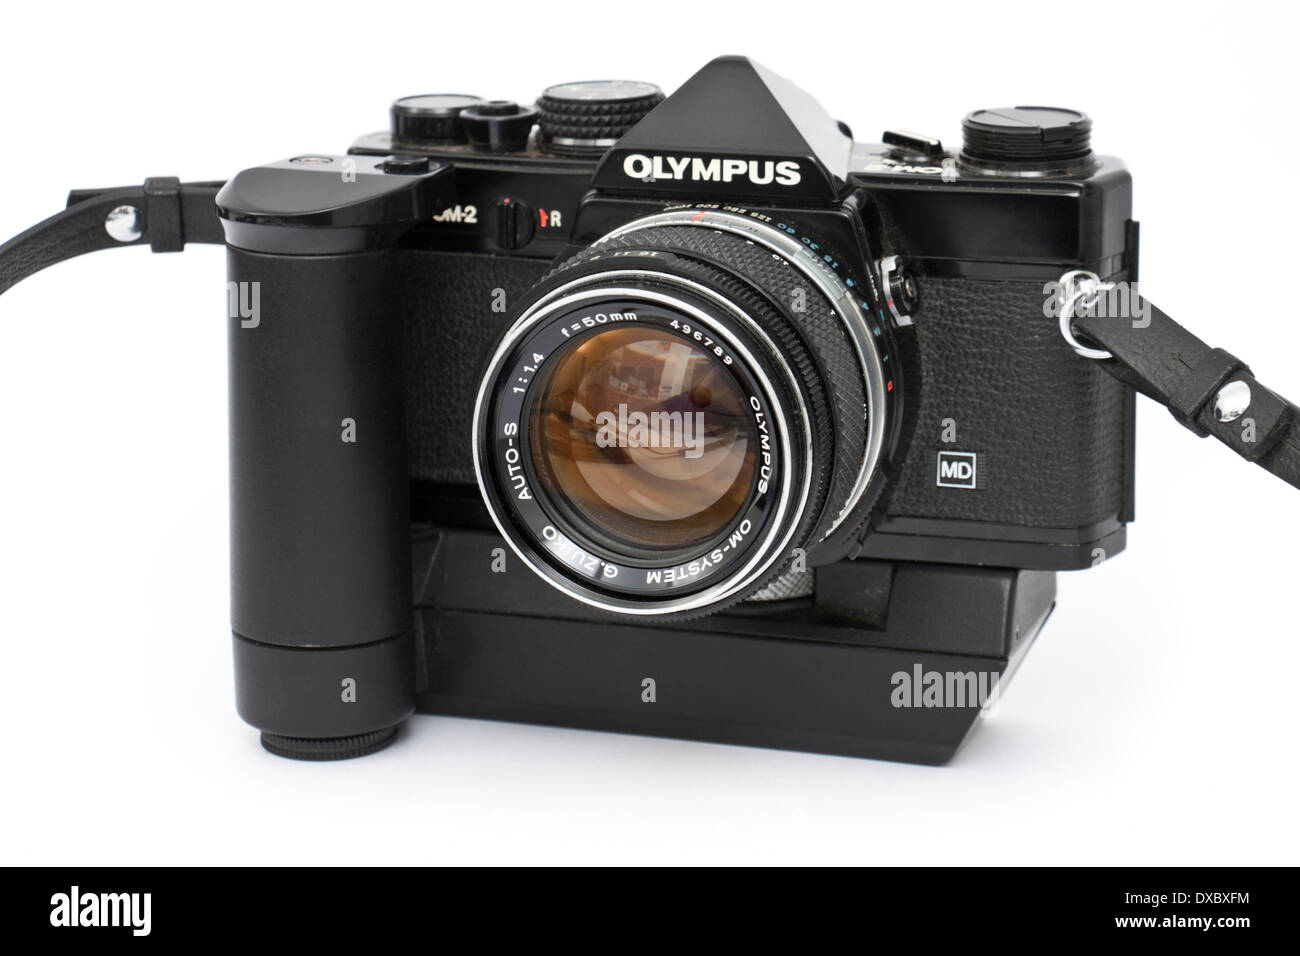 Vintage late 1970's Olympus OM-2 professional 35mm SLR film camera with Olympus G.Zuiko 50mm f/1.4 prime lens Stock Photo